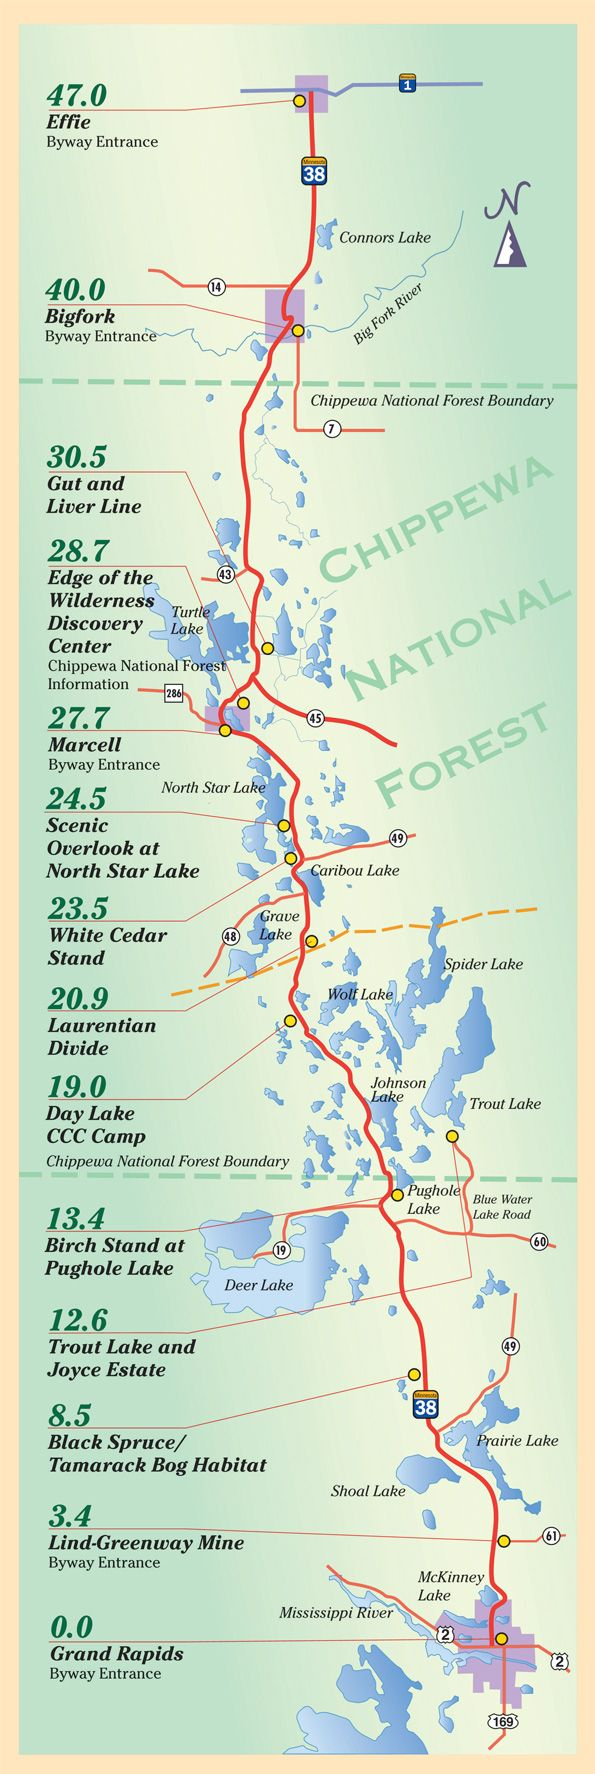 Edge of the Wilderness Scenic Byway - From Grand Rapids, MN North to Effie, MN